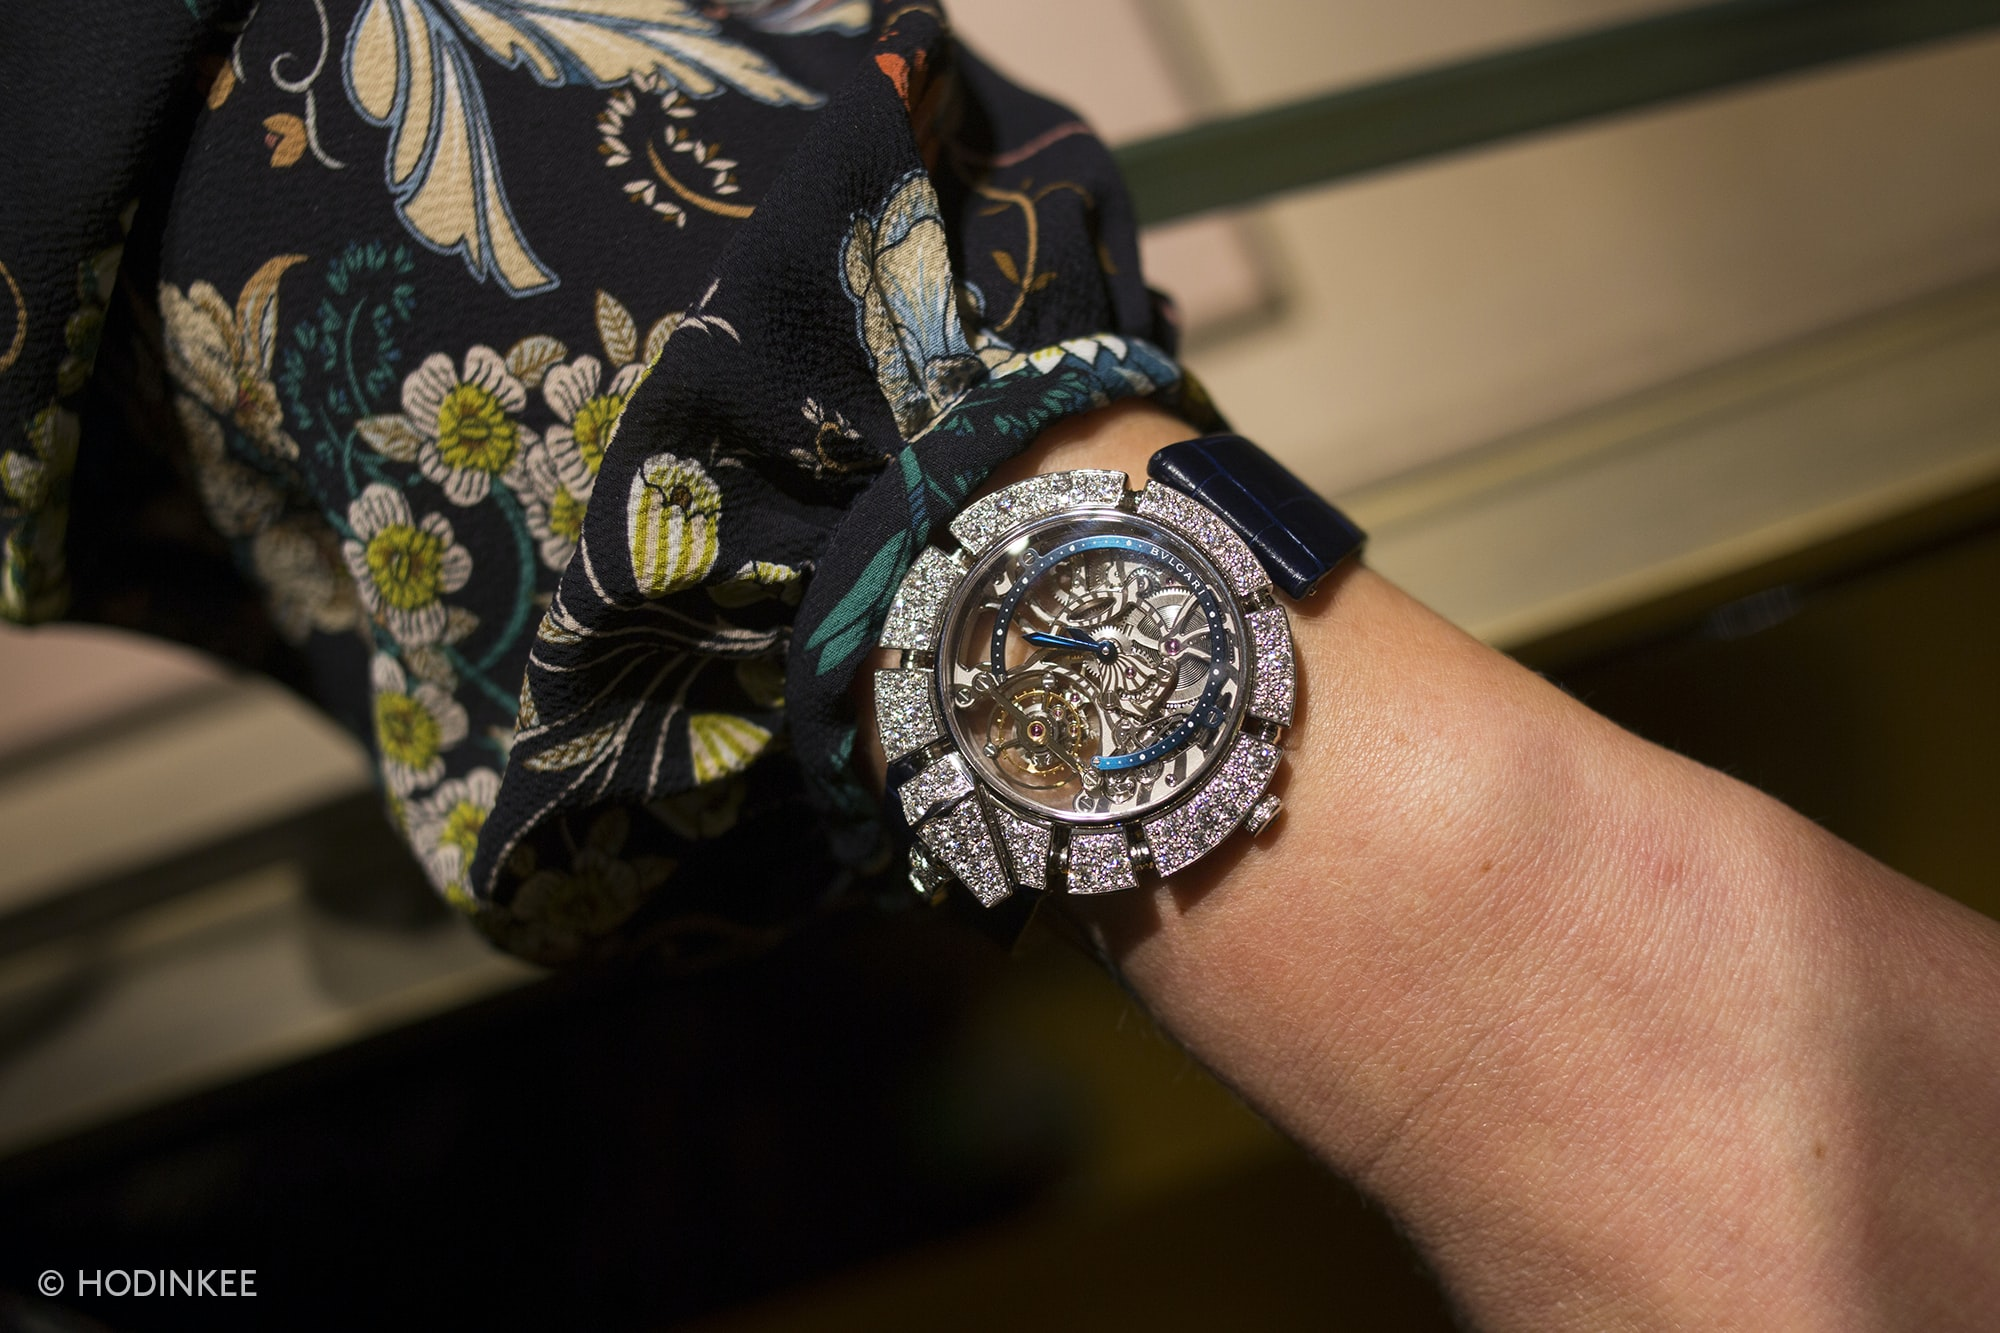 Photo Report: The Bulgari x HODINKEE Celebration Of The Octo Finissimo Minute Repeater In New York City Photo Report: The Bulgari x HODINKEE Celebration Of The Octo Finissimo Minute Repeater In New York City 20010097 copy